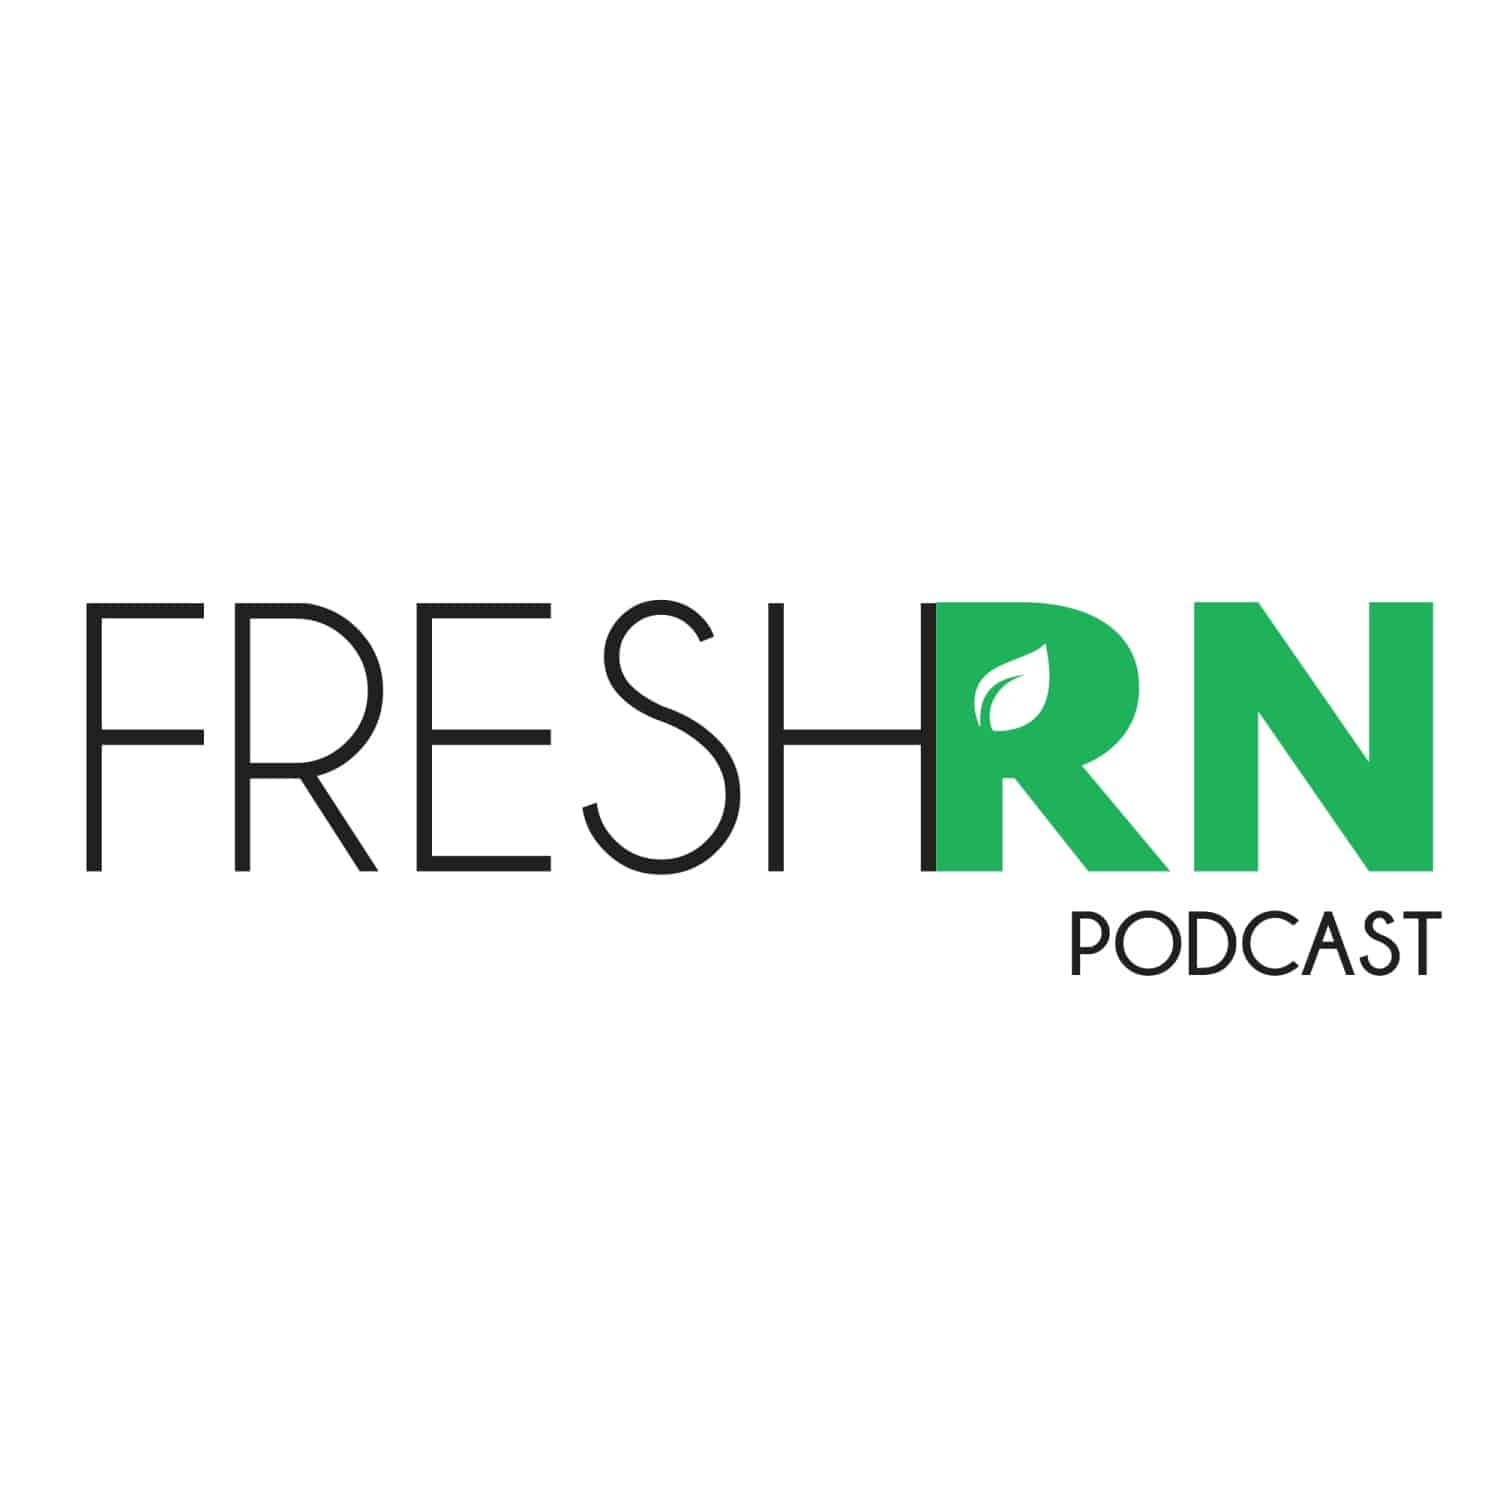 FreshRN Podcast, Episode 5: Working With Physicians